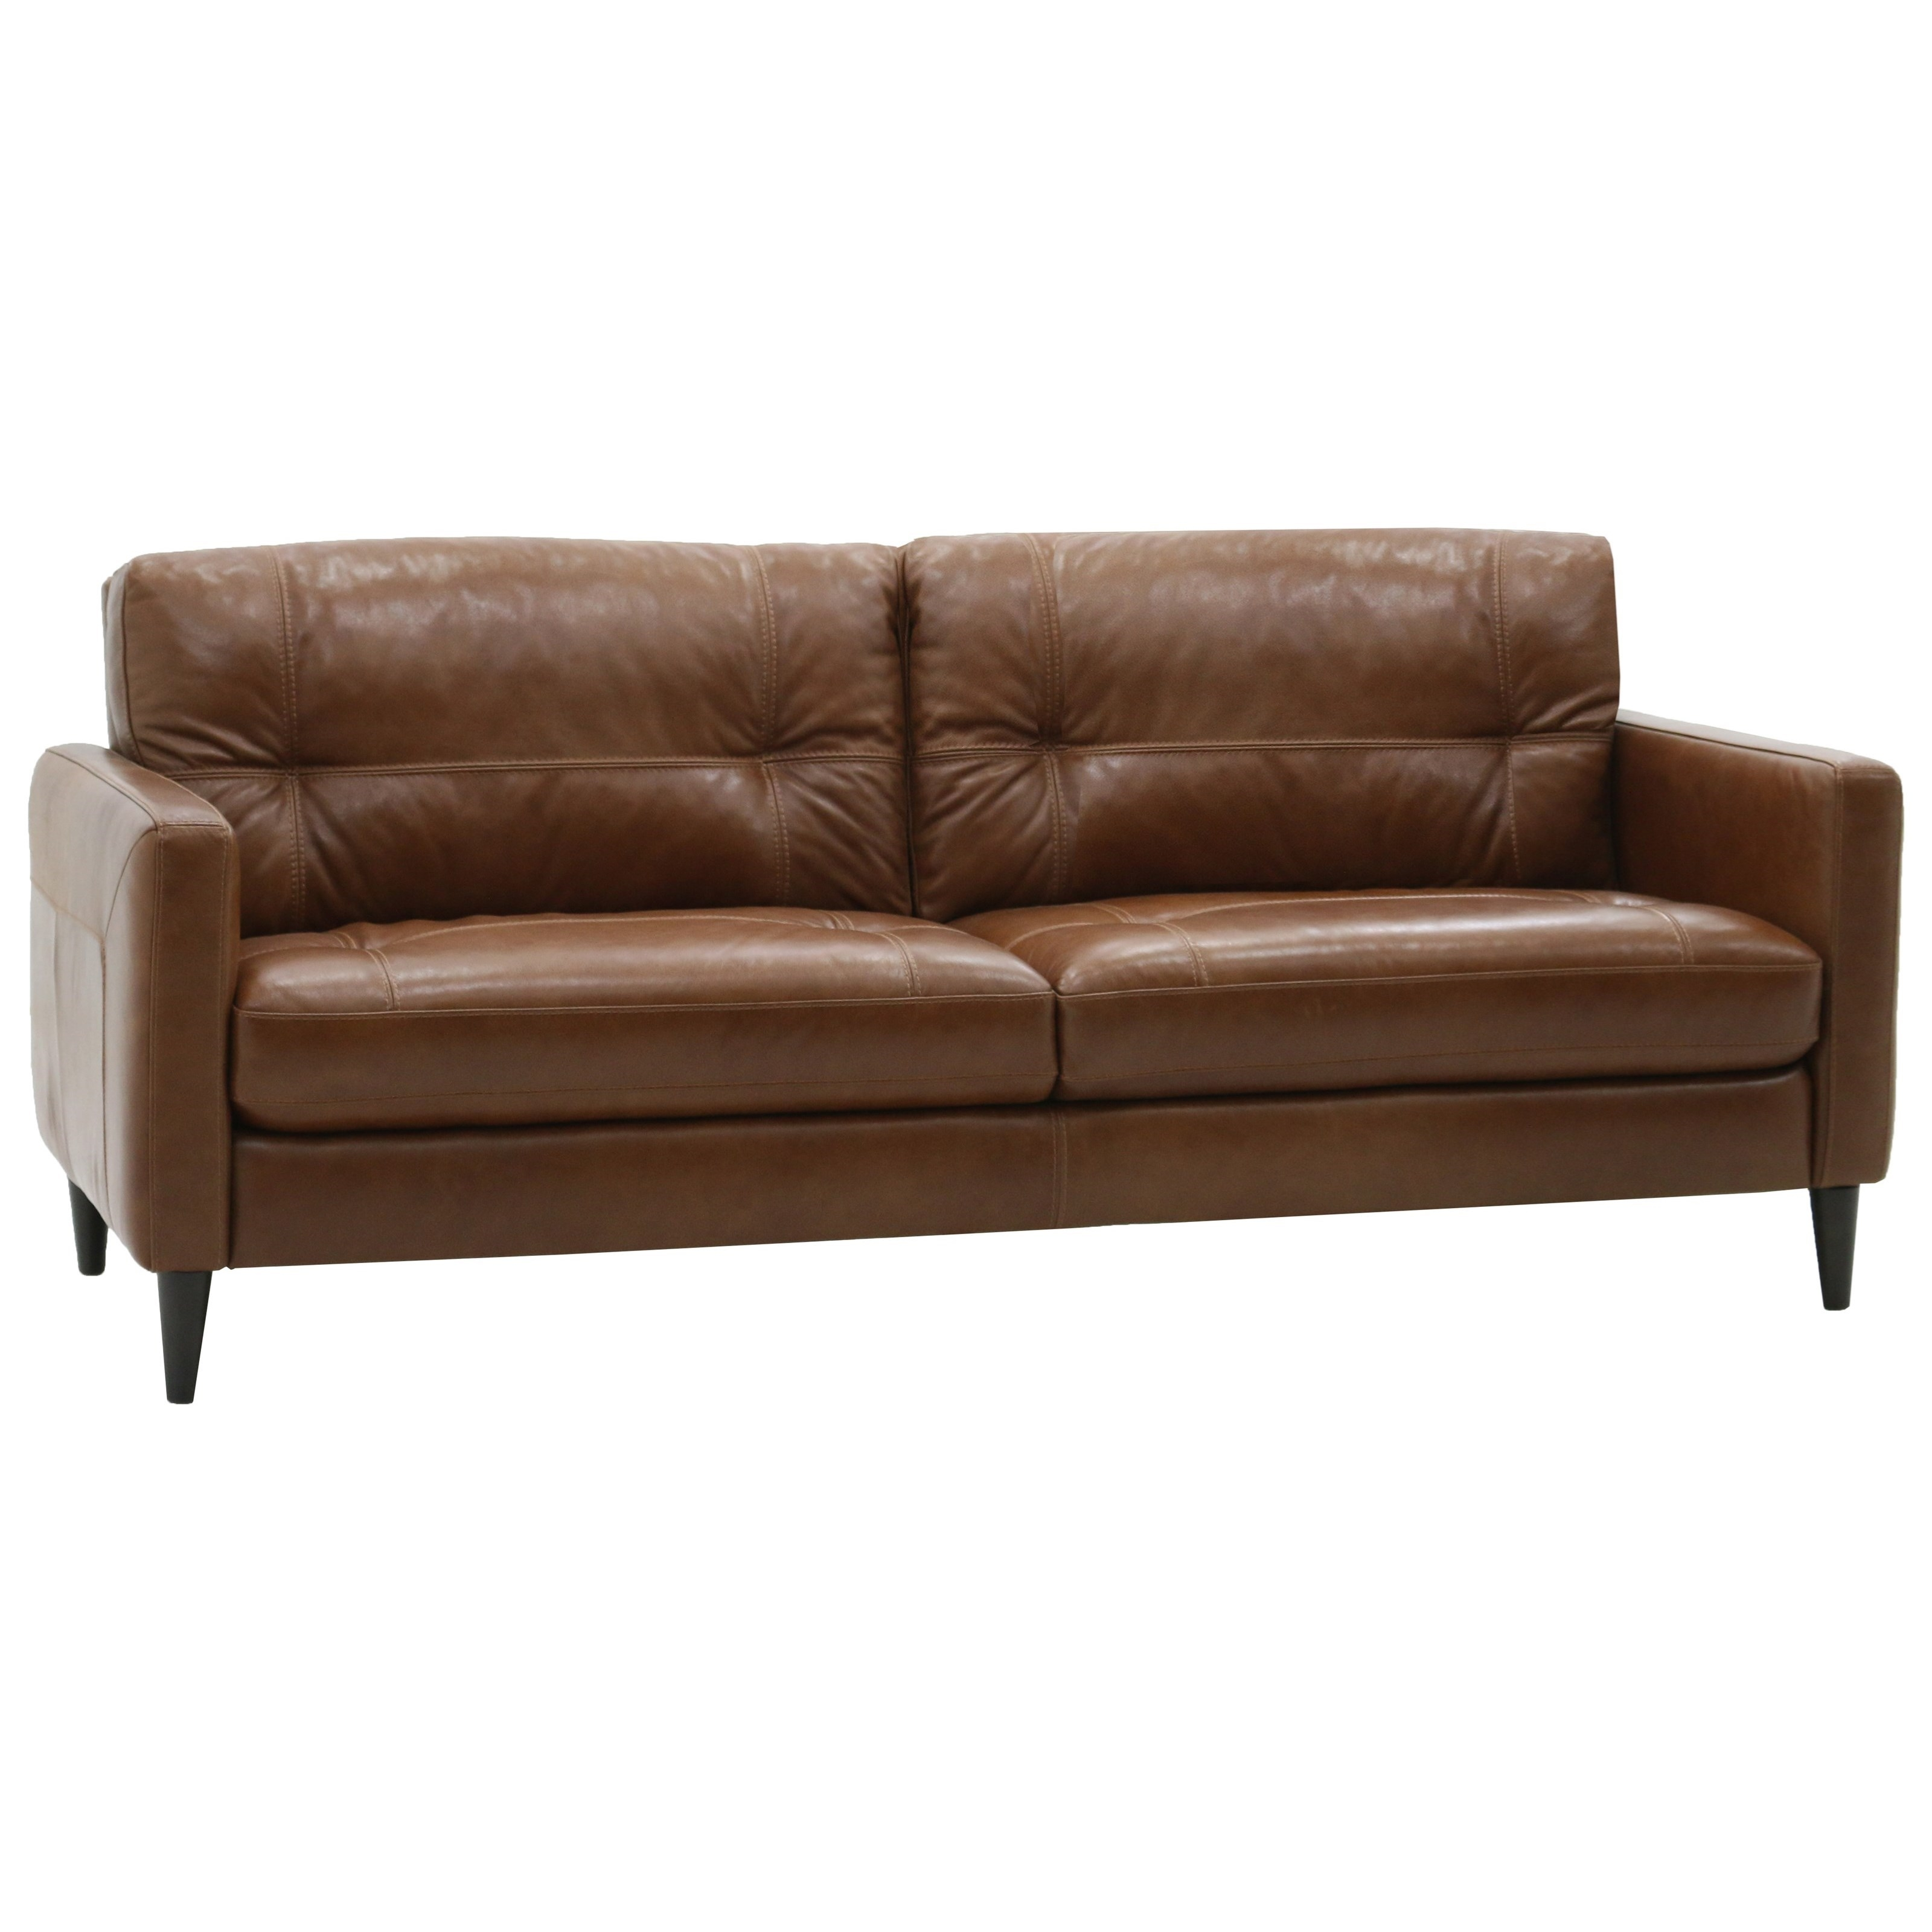 Leather Sofas Washington Dc Northern Virginia Maryland And With Regard To Bentley Sectional Leather Sofa (Image 10 of 15)